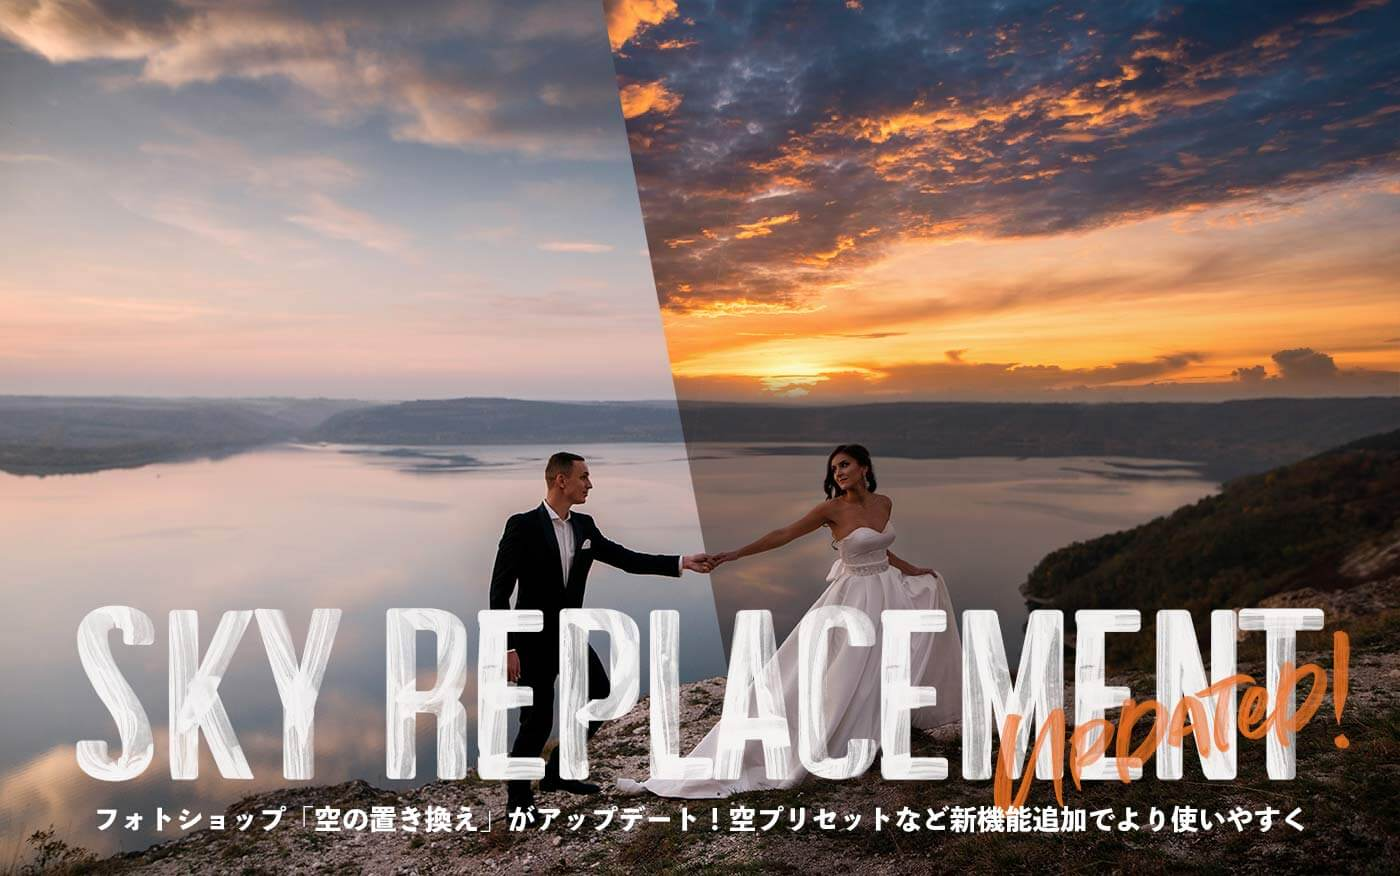 Sky-Replacement-ver2.0サムネイルカバー